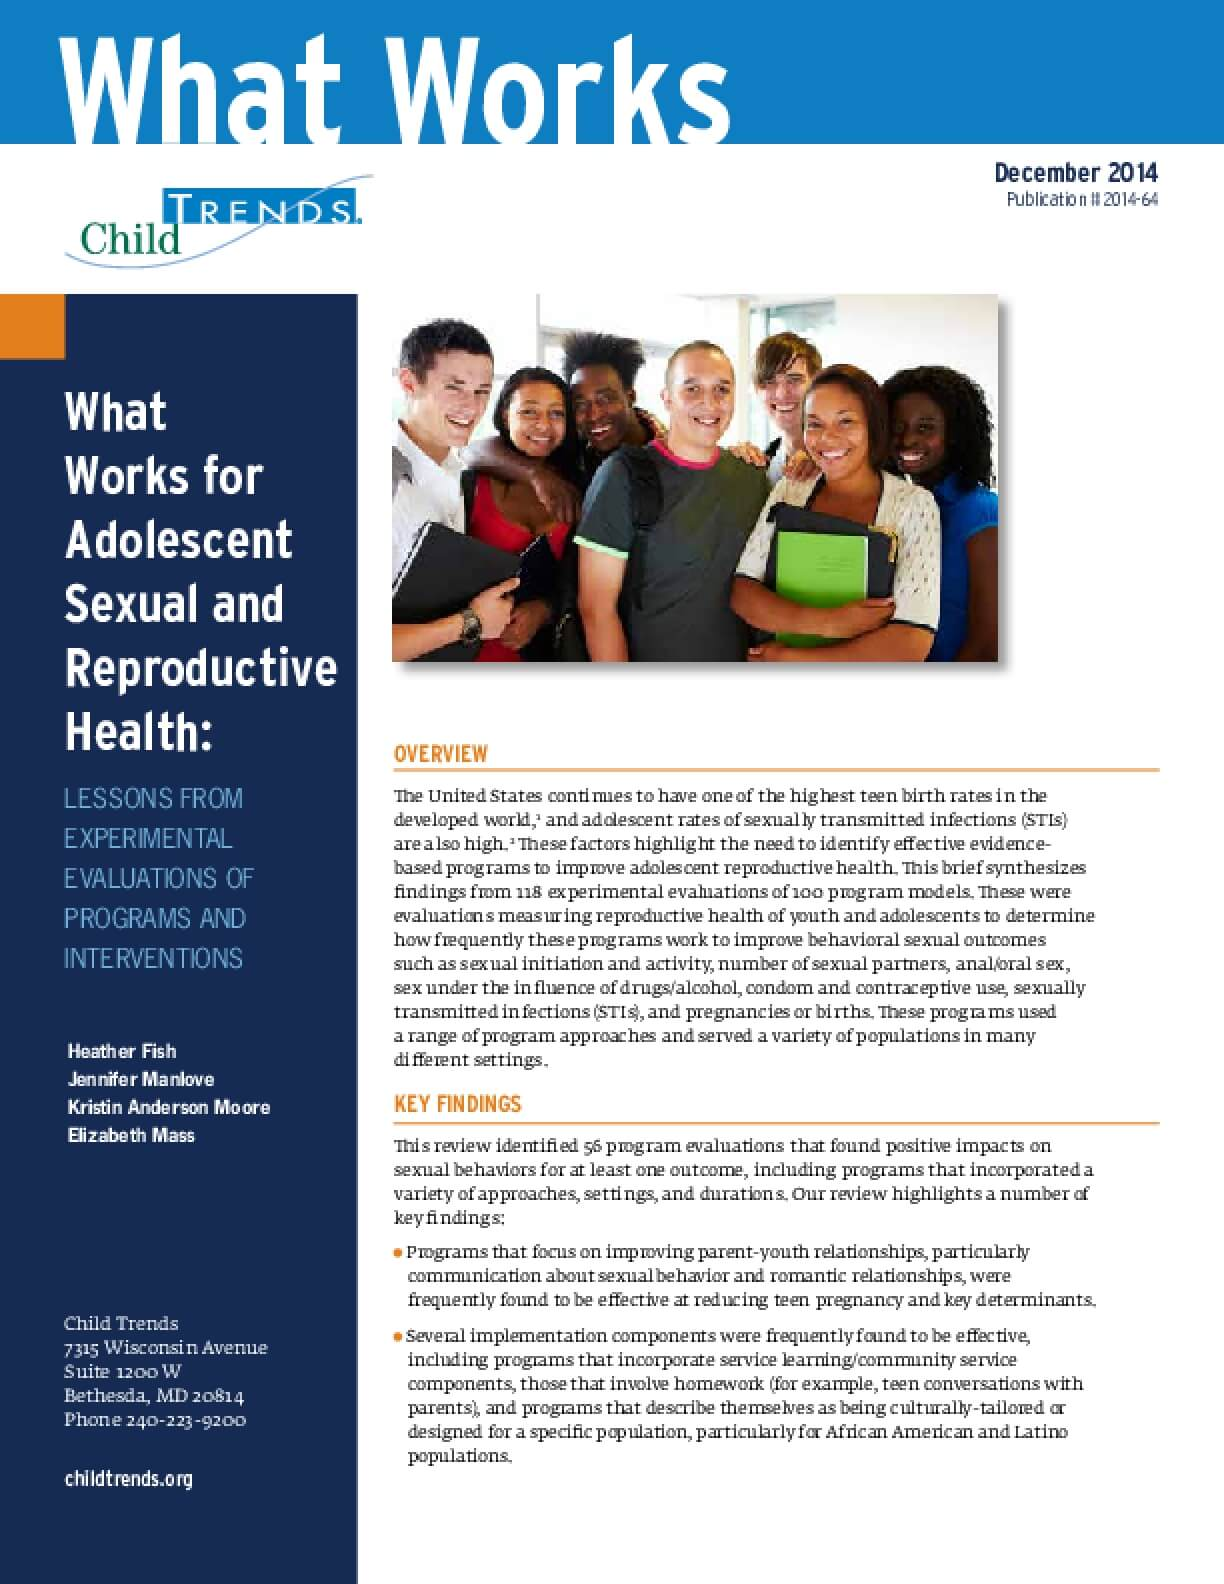 What Works for Adolescent Sexual and Reproductive Health: Lessons from Experimental Evaluations of Programs and Interventions